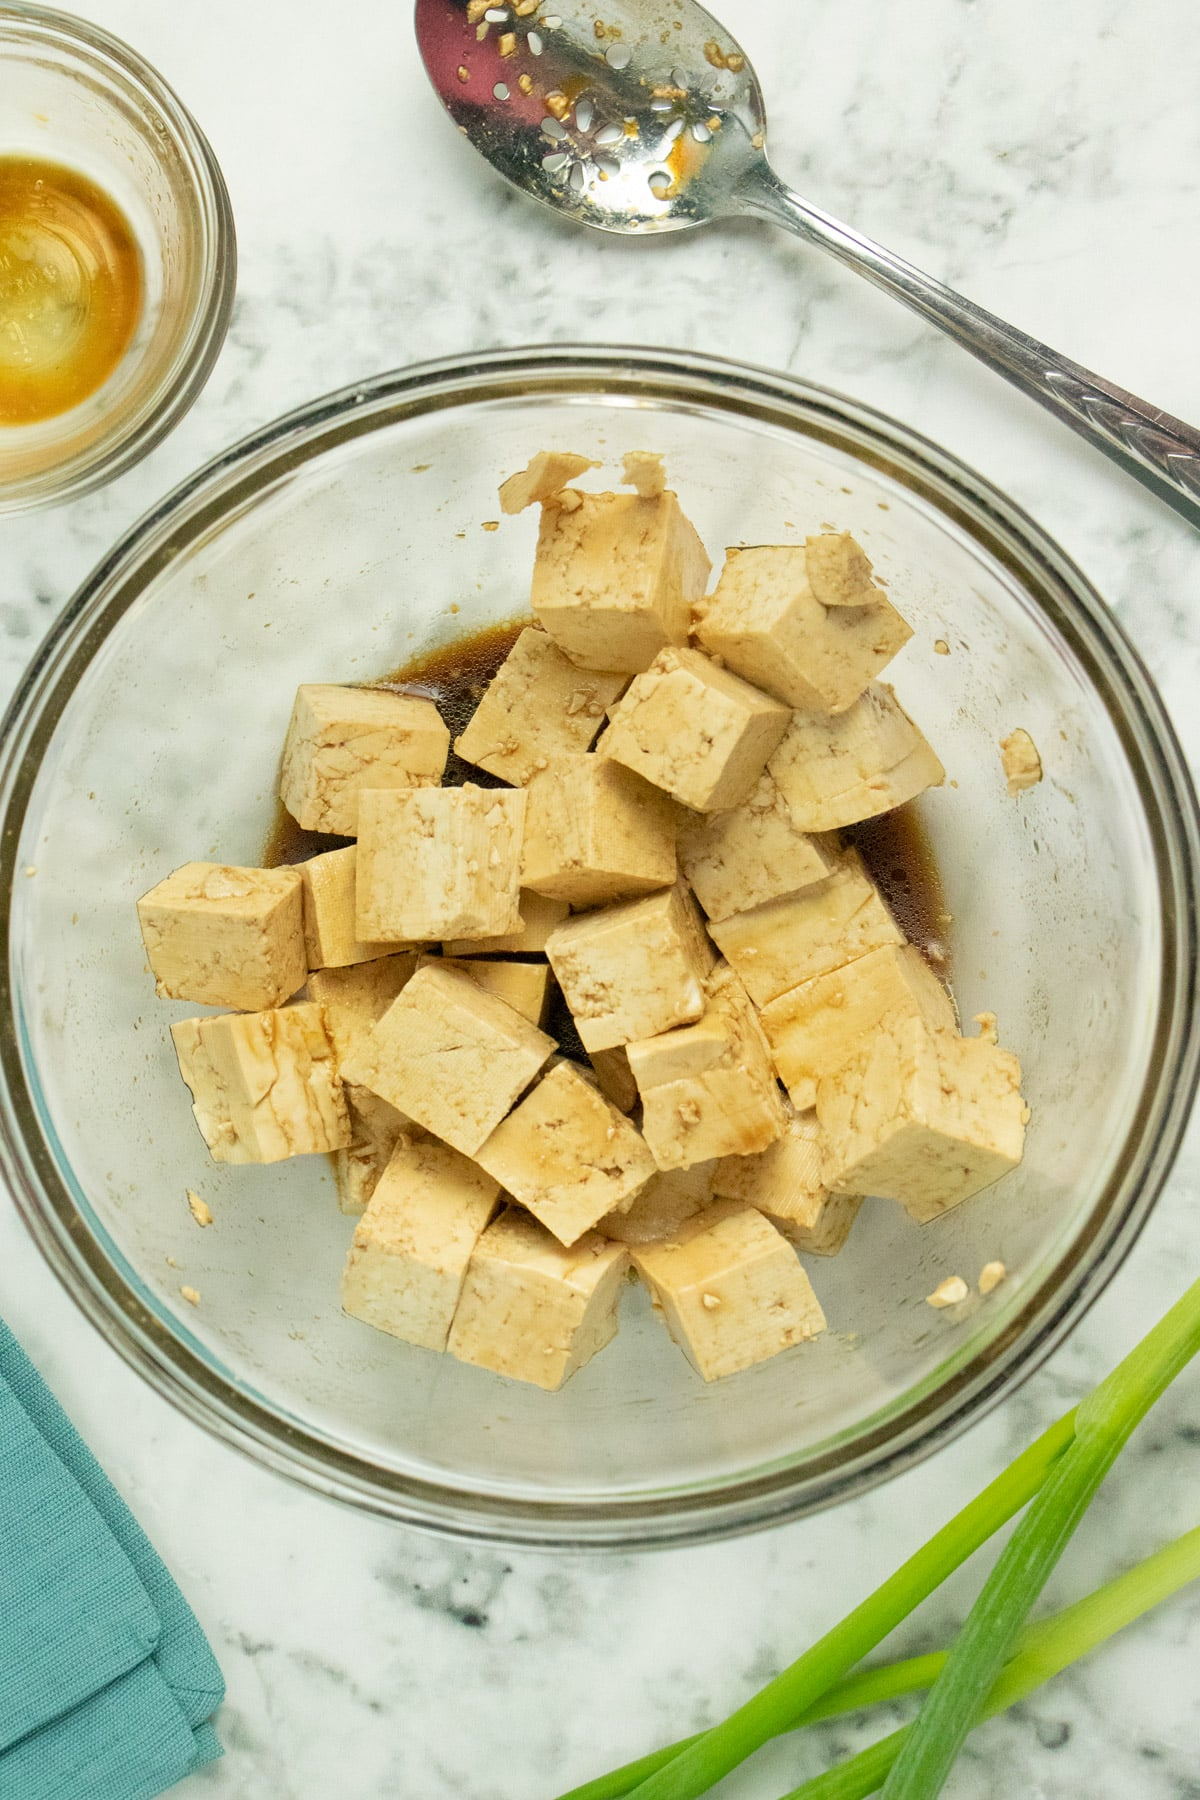 glass bowl of cubed tofu marinating next to a large spoon